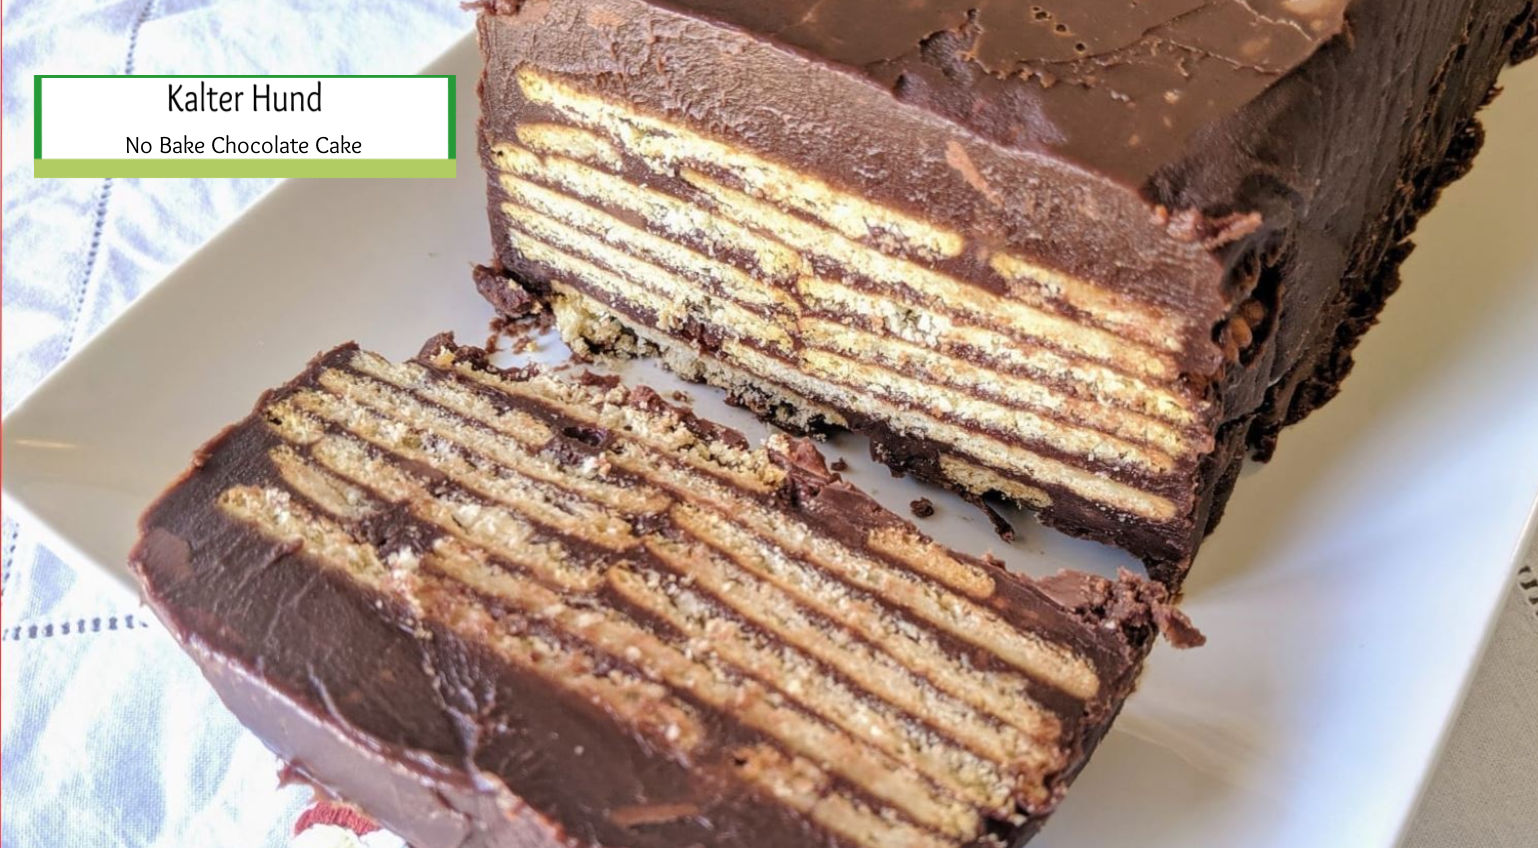 Kalter Hund Recipe – A Delicious No Bake Chocolate Biscuit Cake